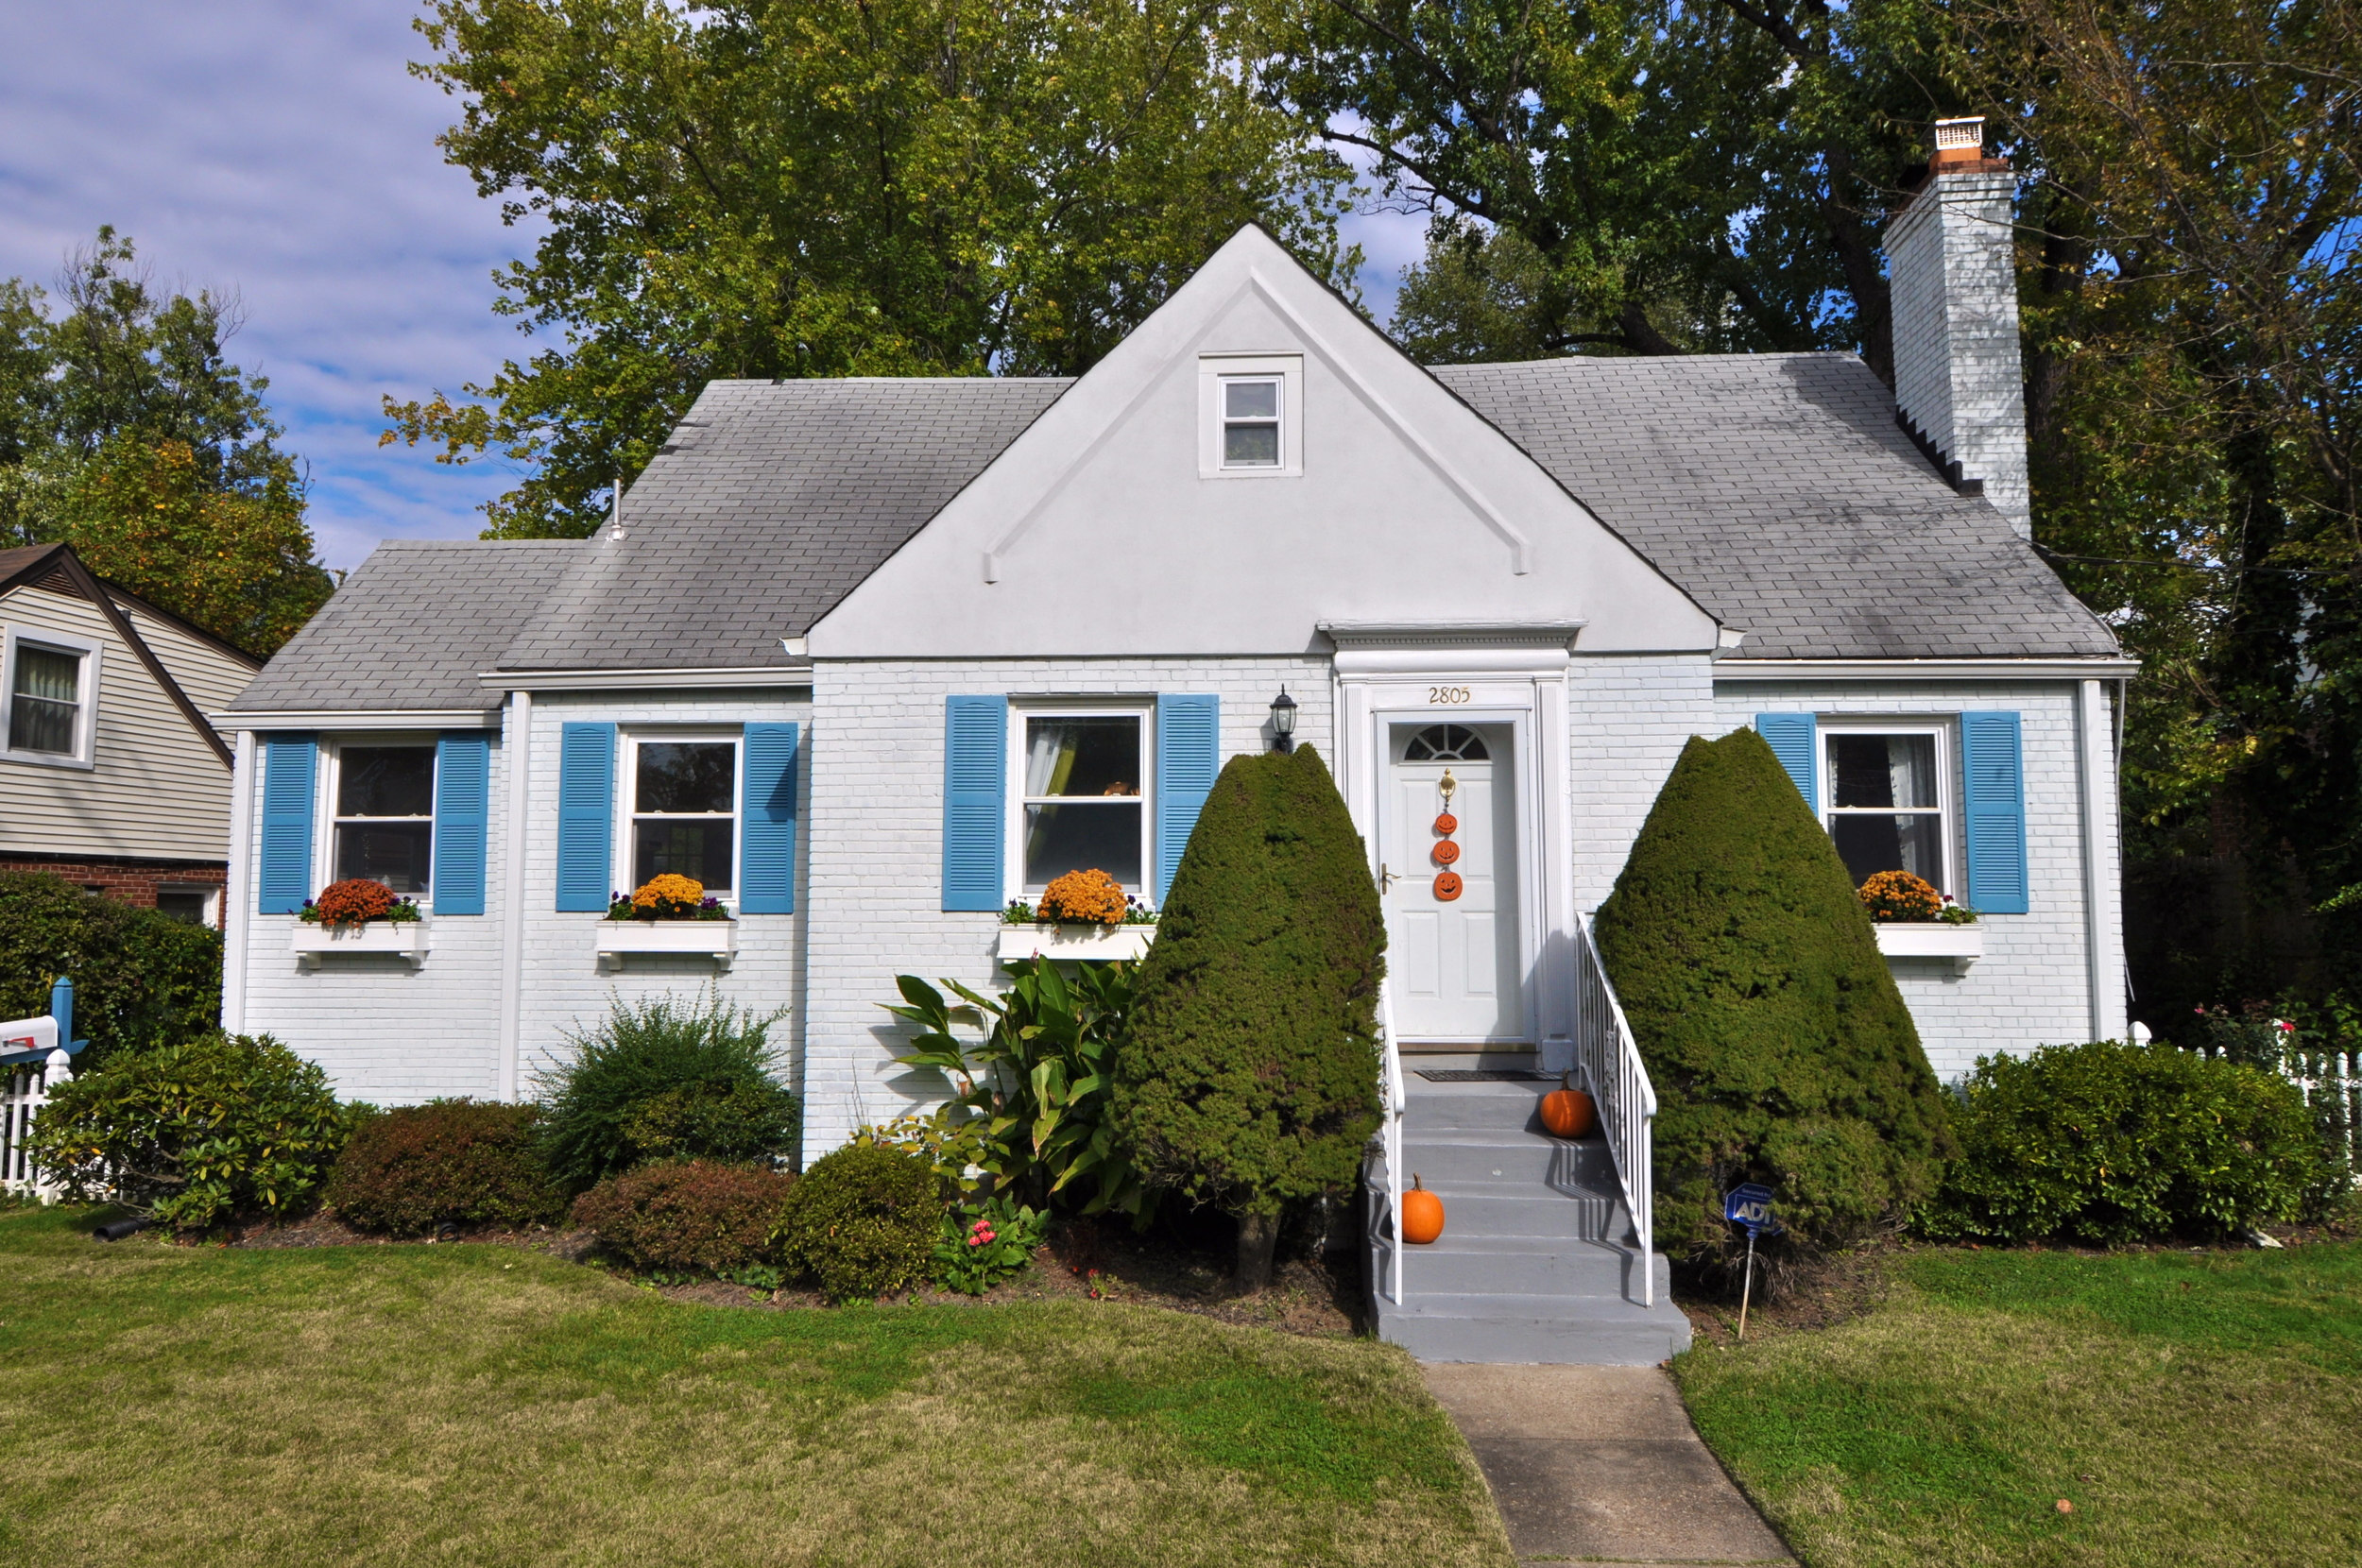 Sold Listing - Wheaton, MD